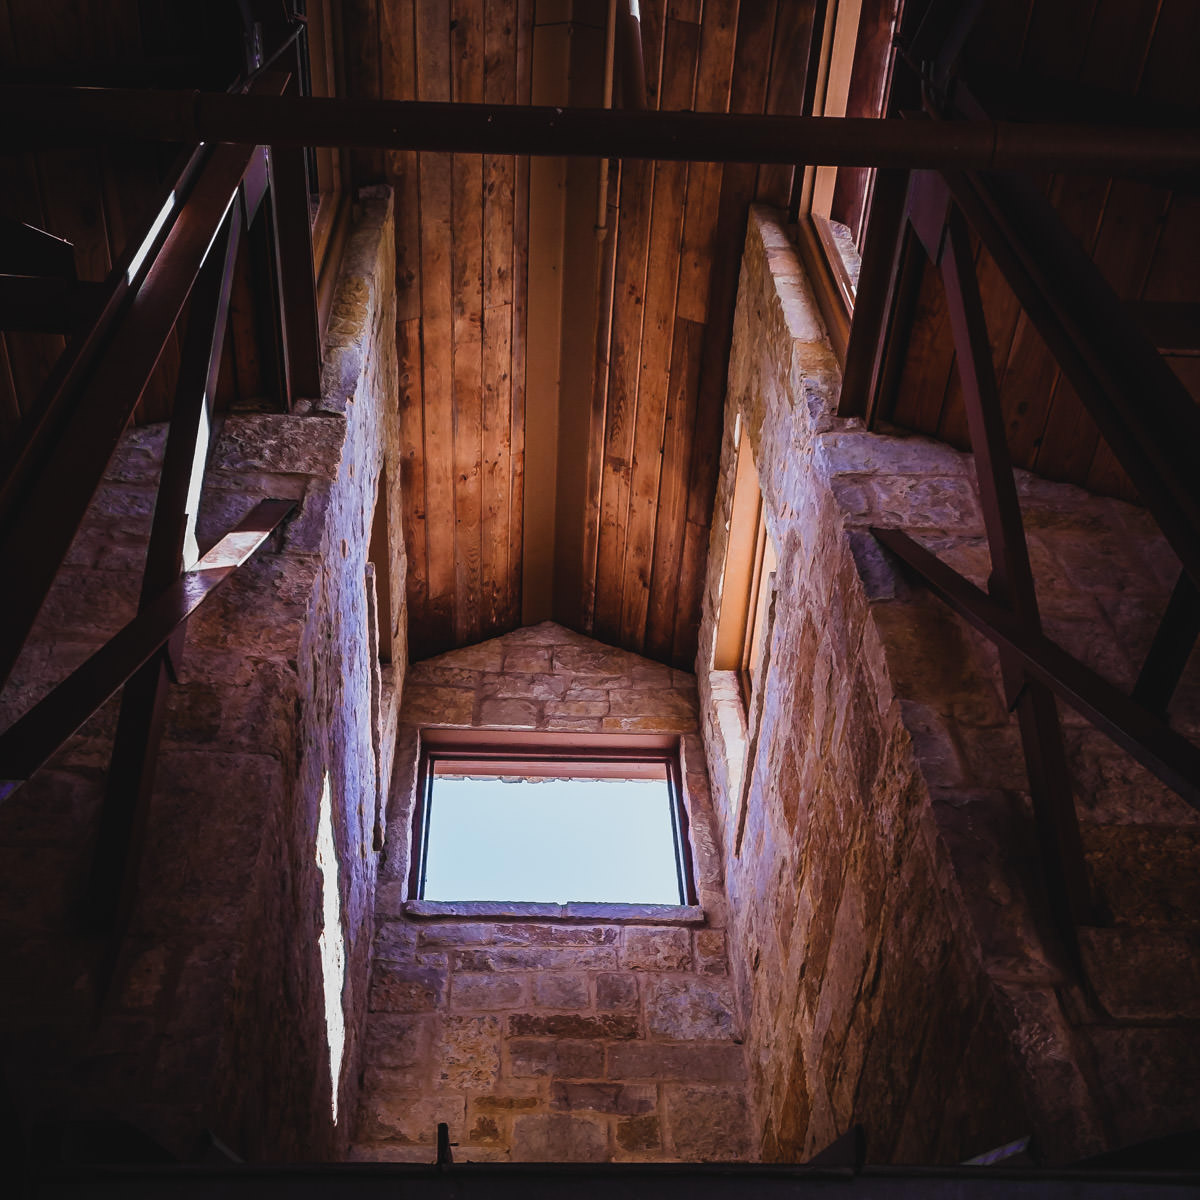 Sunlight illuminates the interior of this structure at the Arbor Hills Nature Preserve in Plano, Texas.